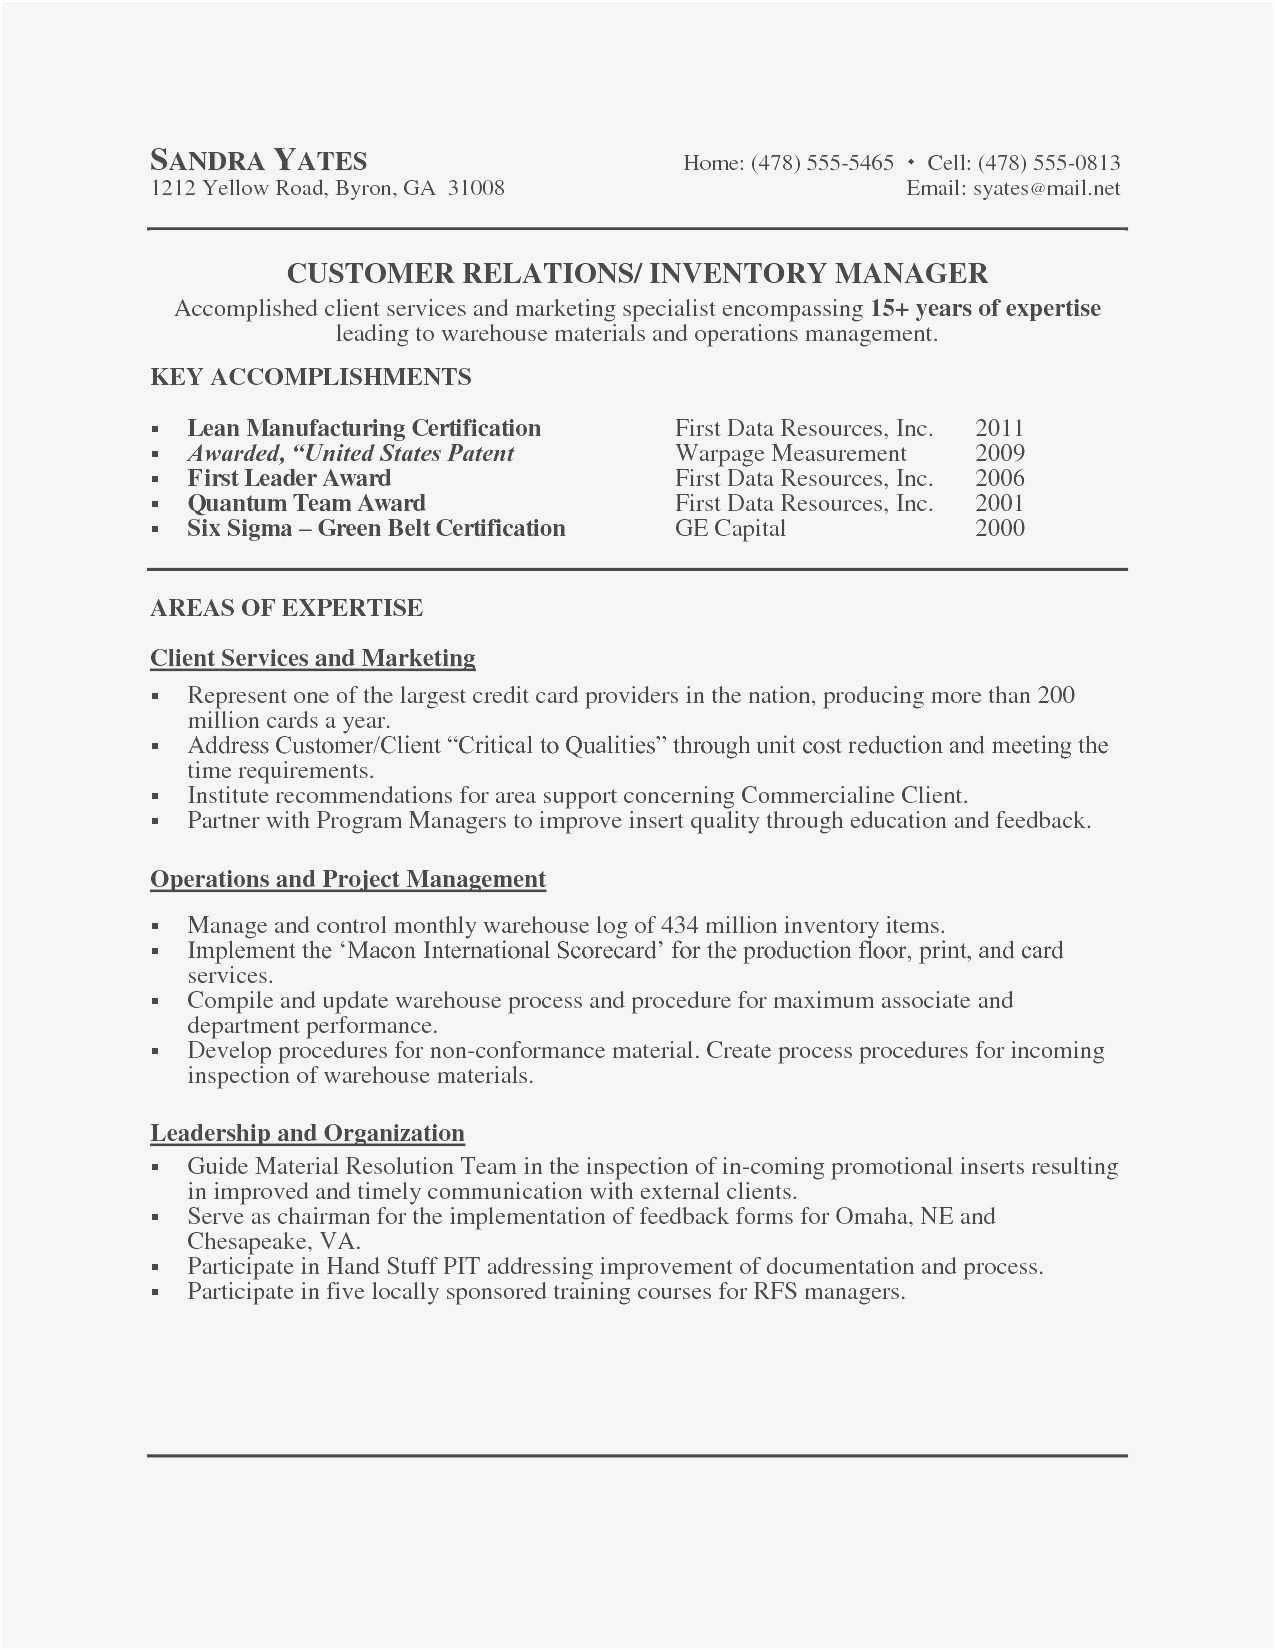 Boss Birthday Card Fresh Free Creative Birthday Greeting Cards Personal Feedbac Sales Resume Examples Resume Writing Services Certificate Templates